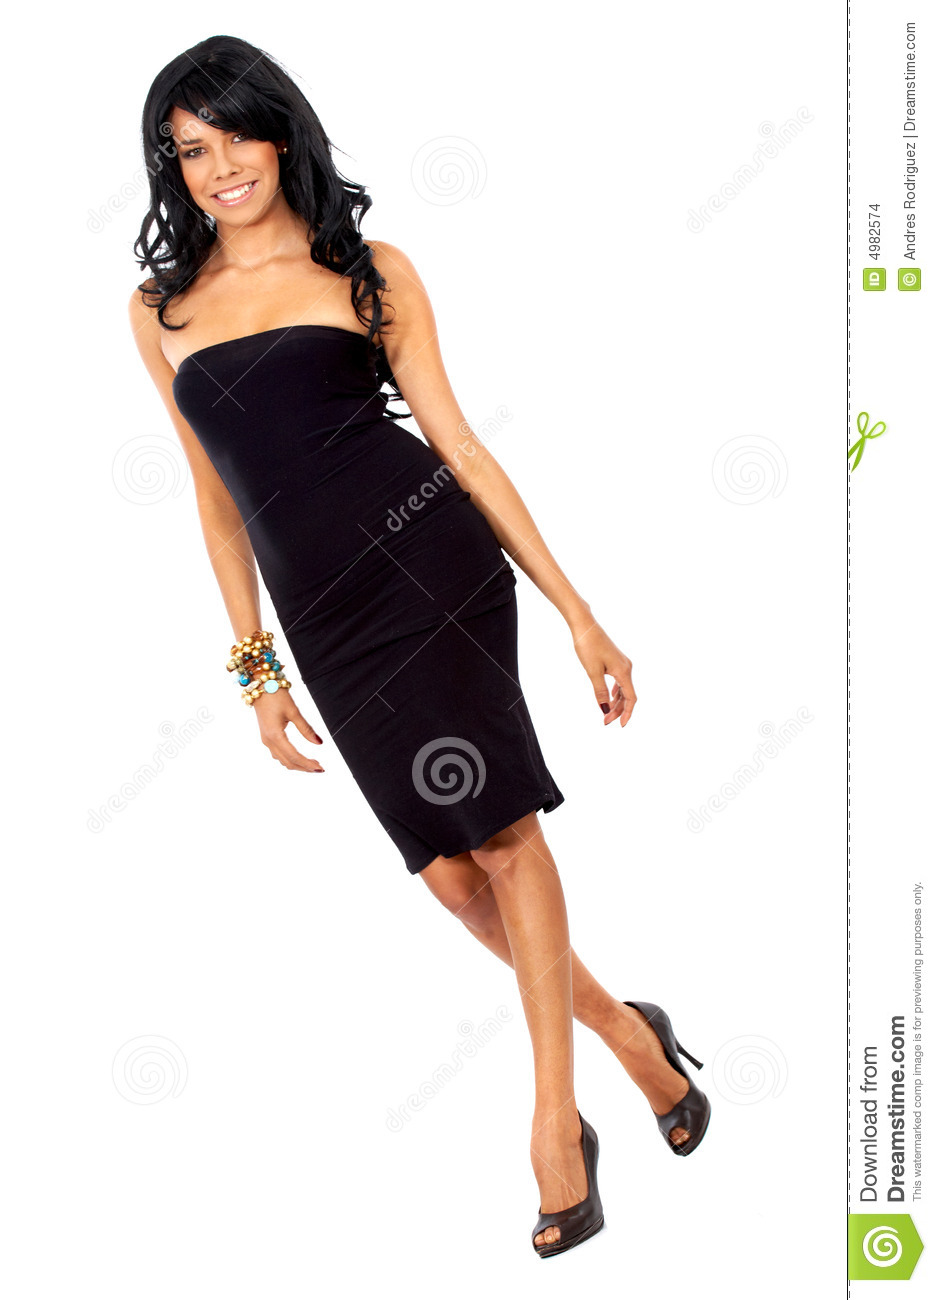 Walking Fashion Model In Black Mini Dress Stock Photo ... |Fashion Model Walking